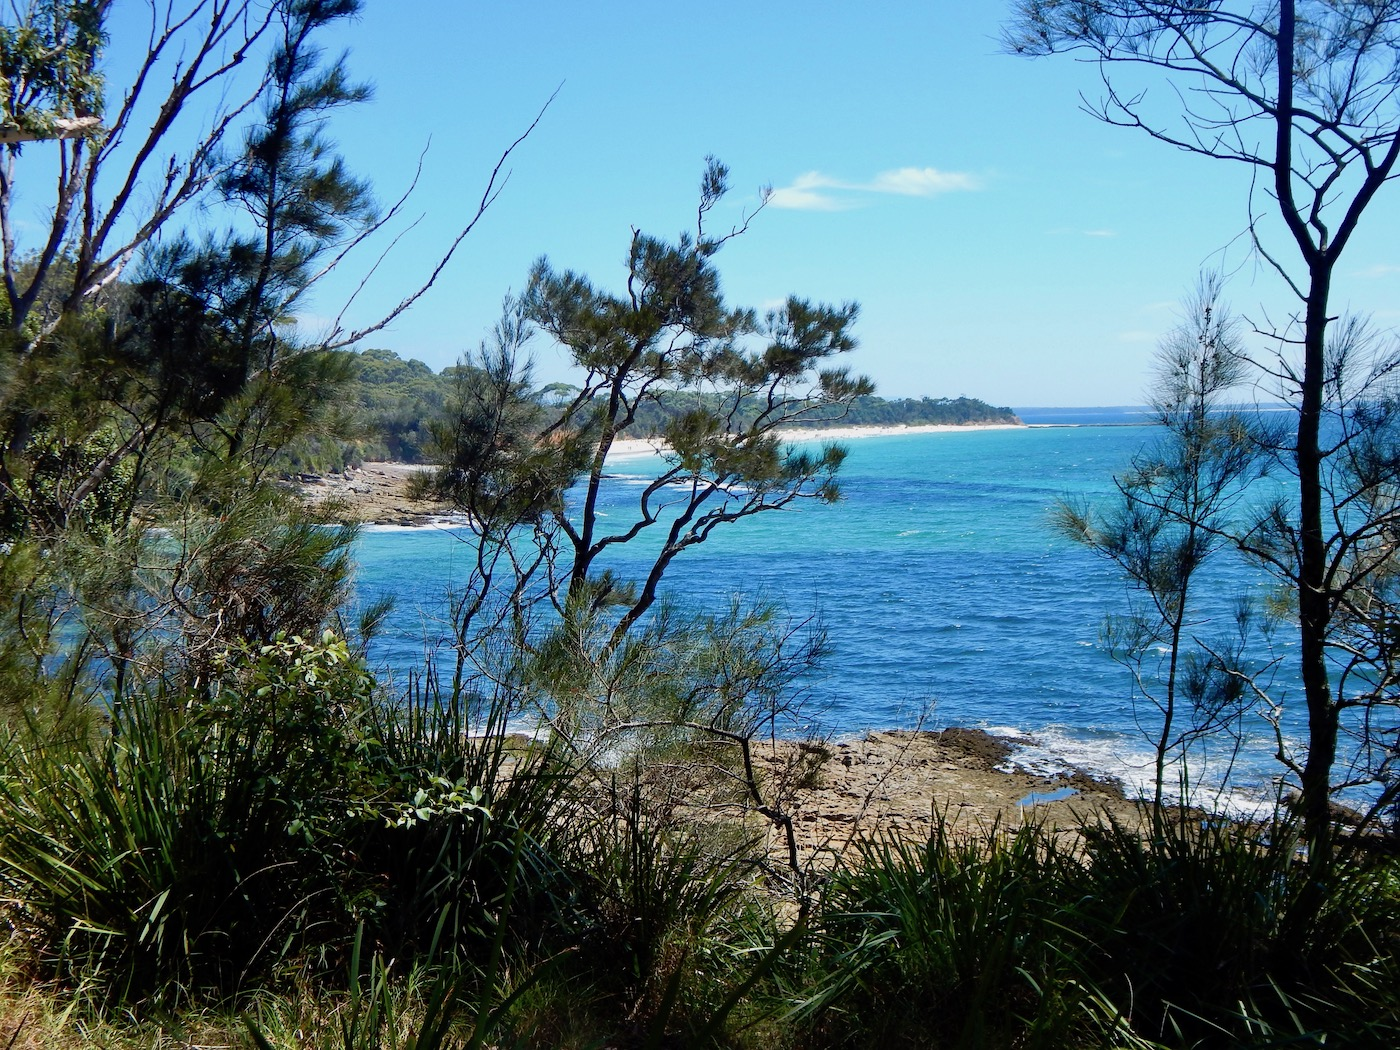 greenfield beach in jervis bay NSW view